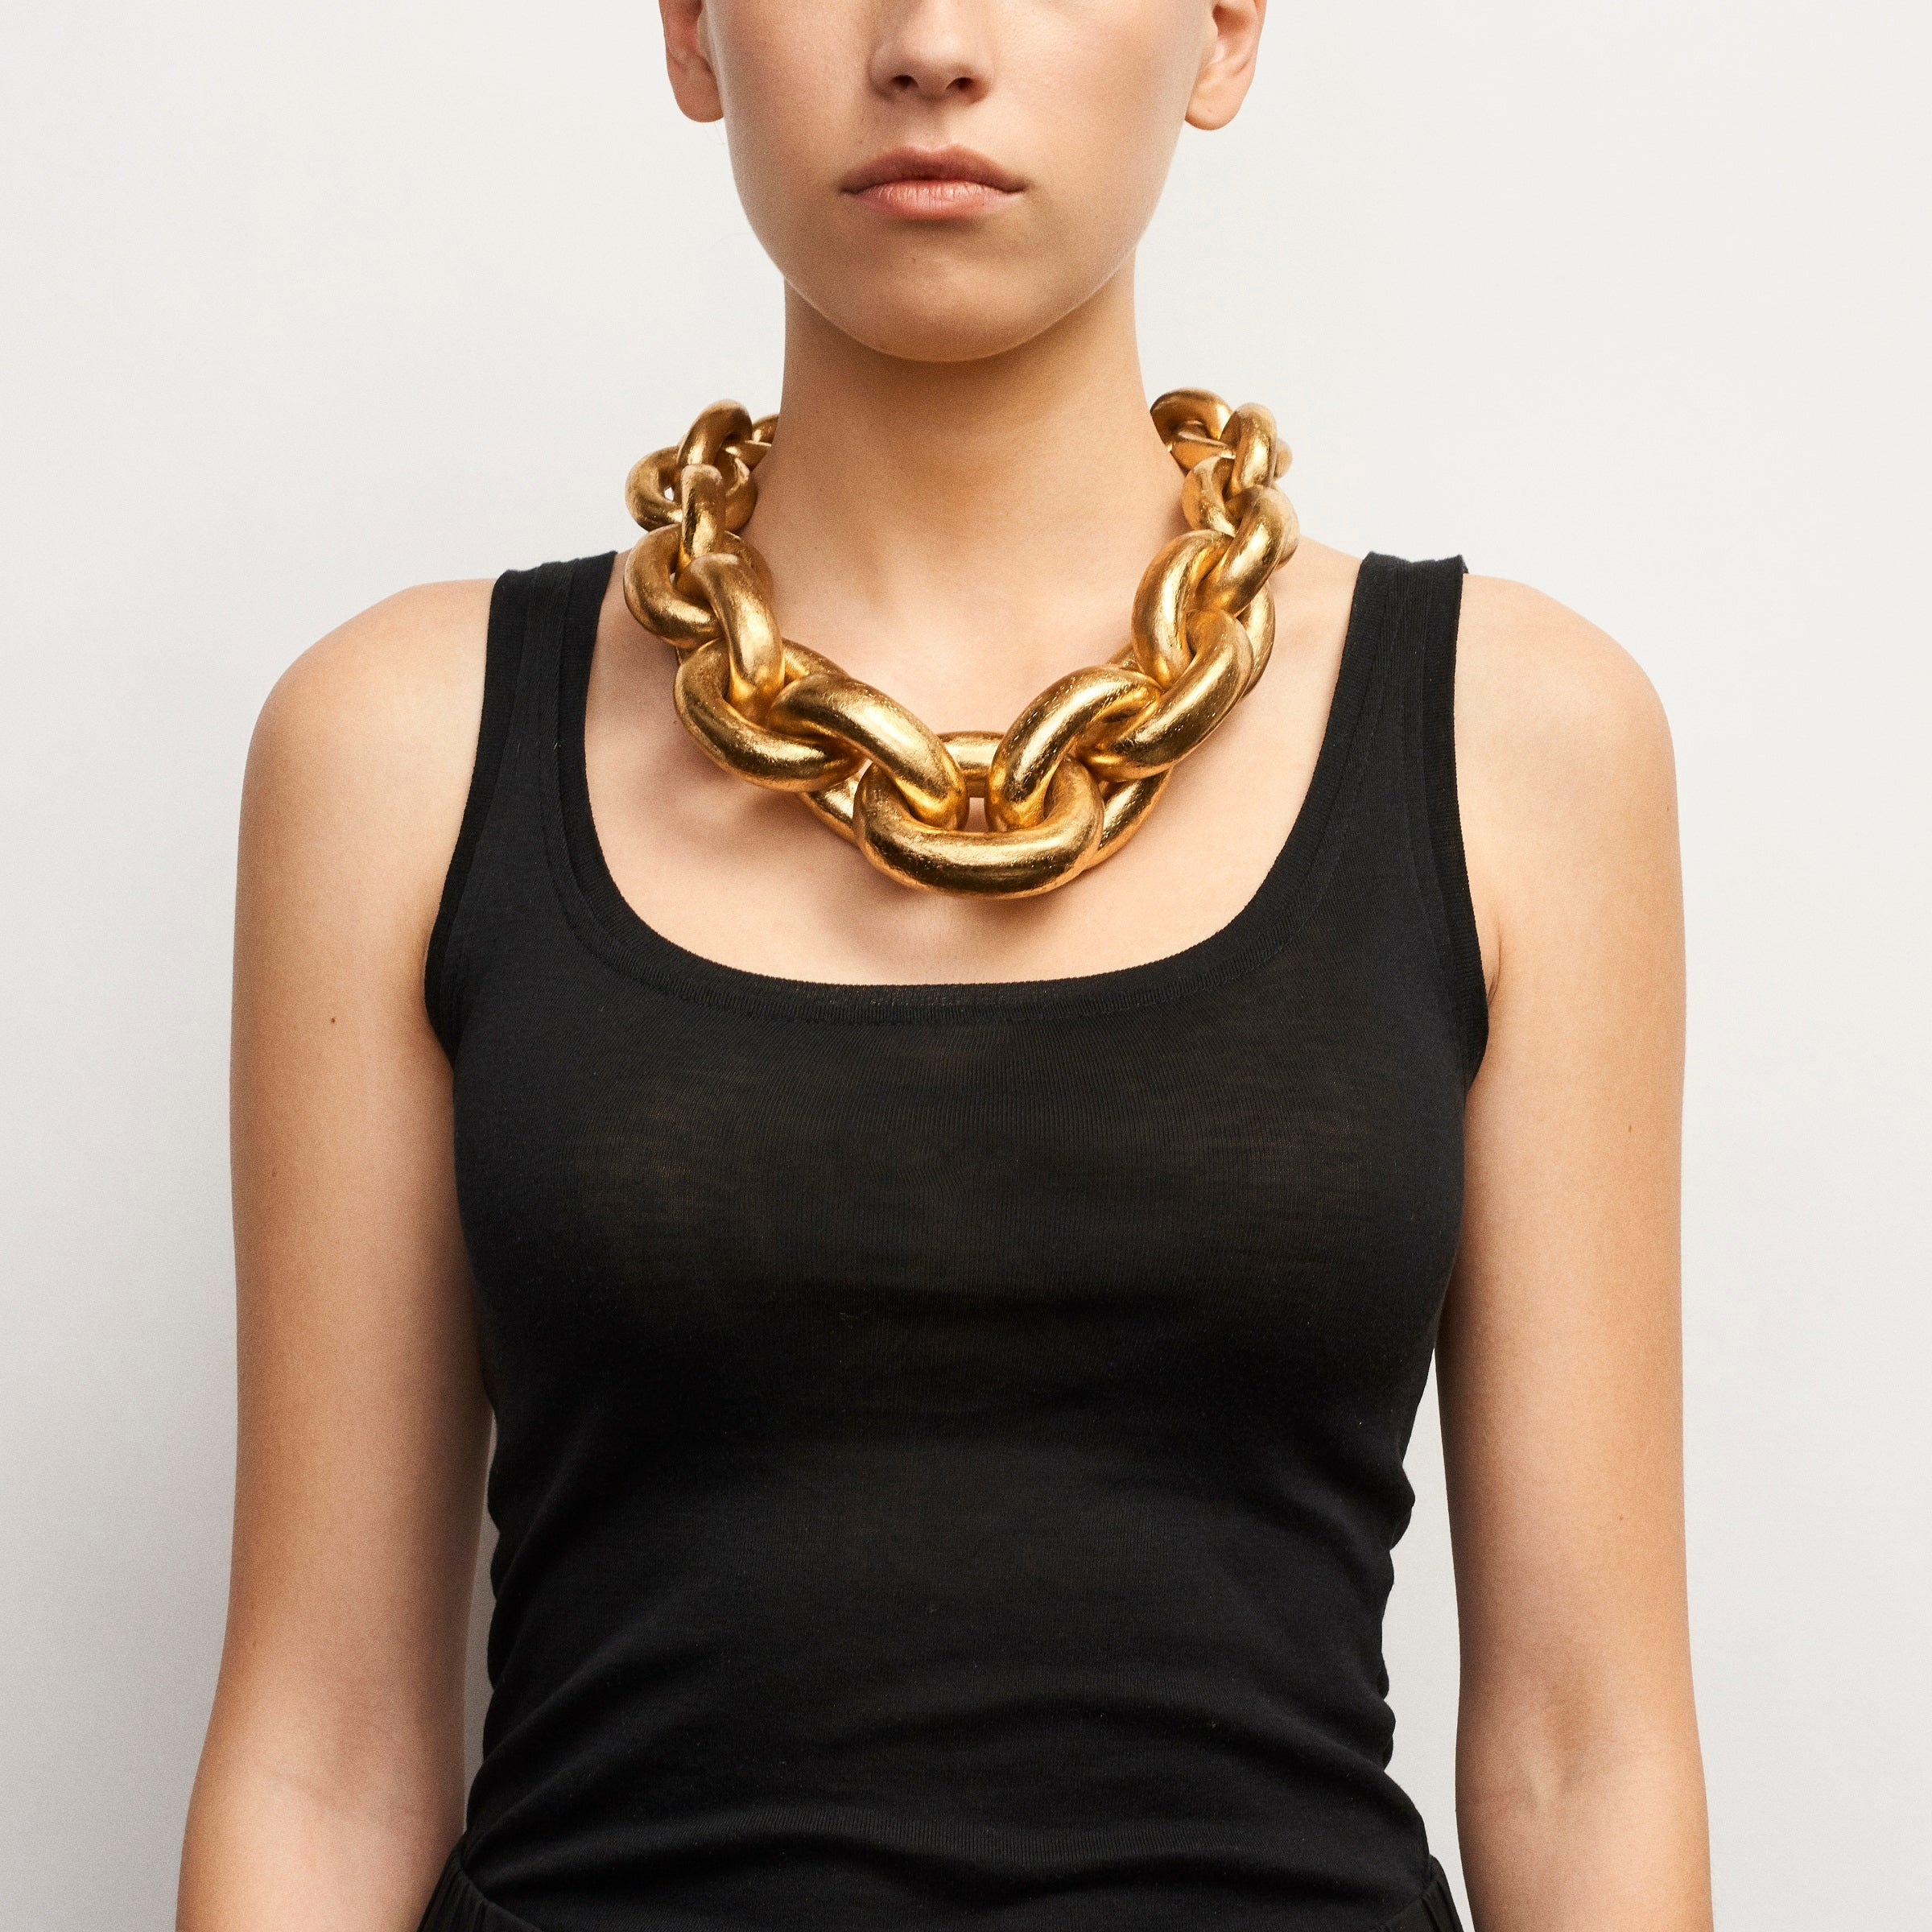 Chain necklace in acacia